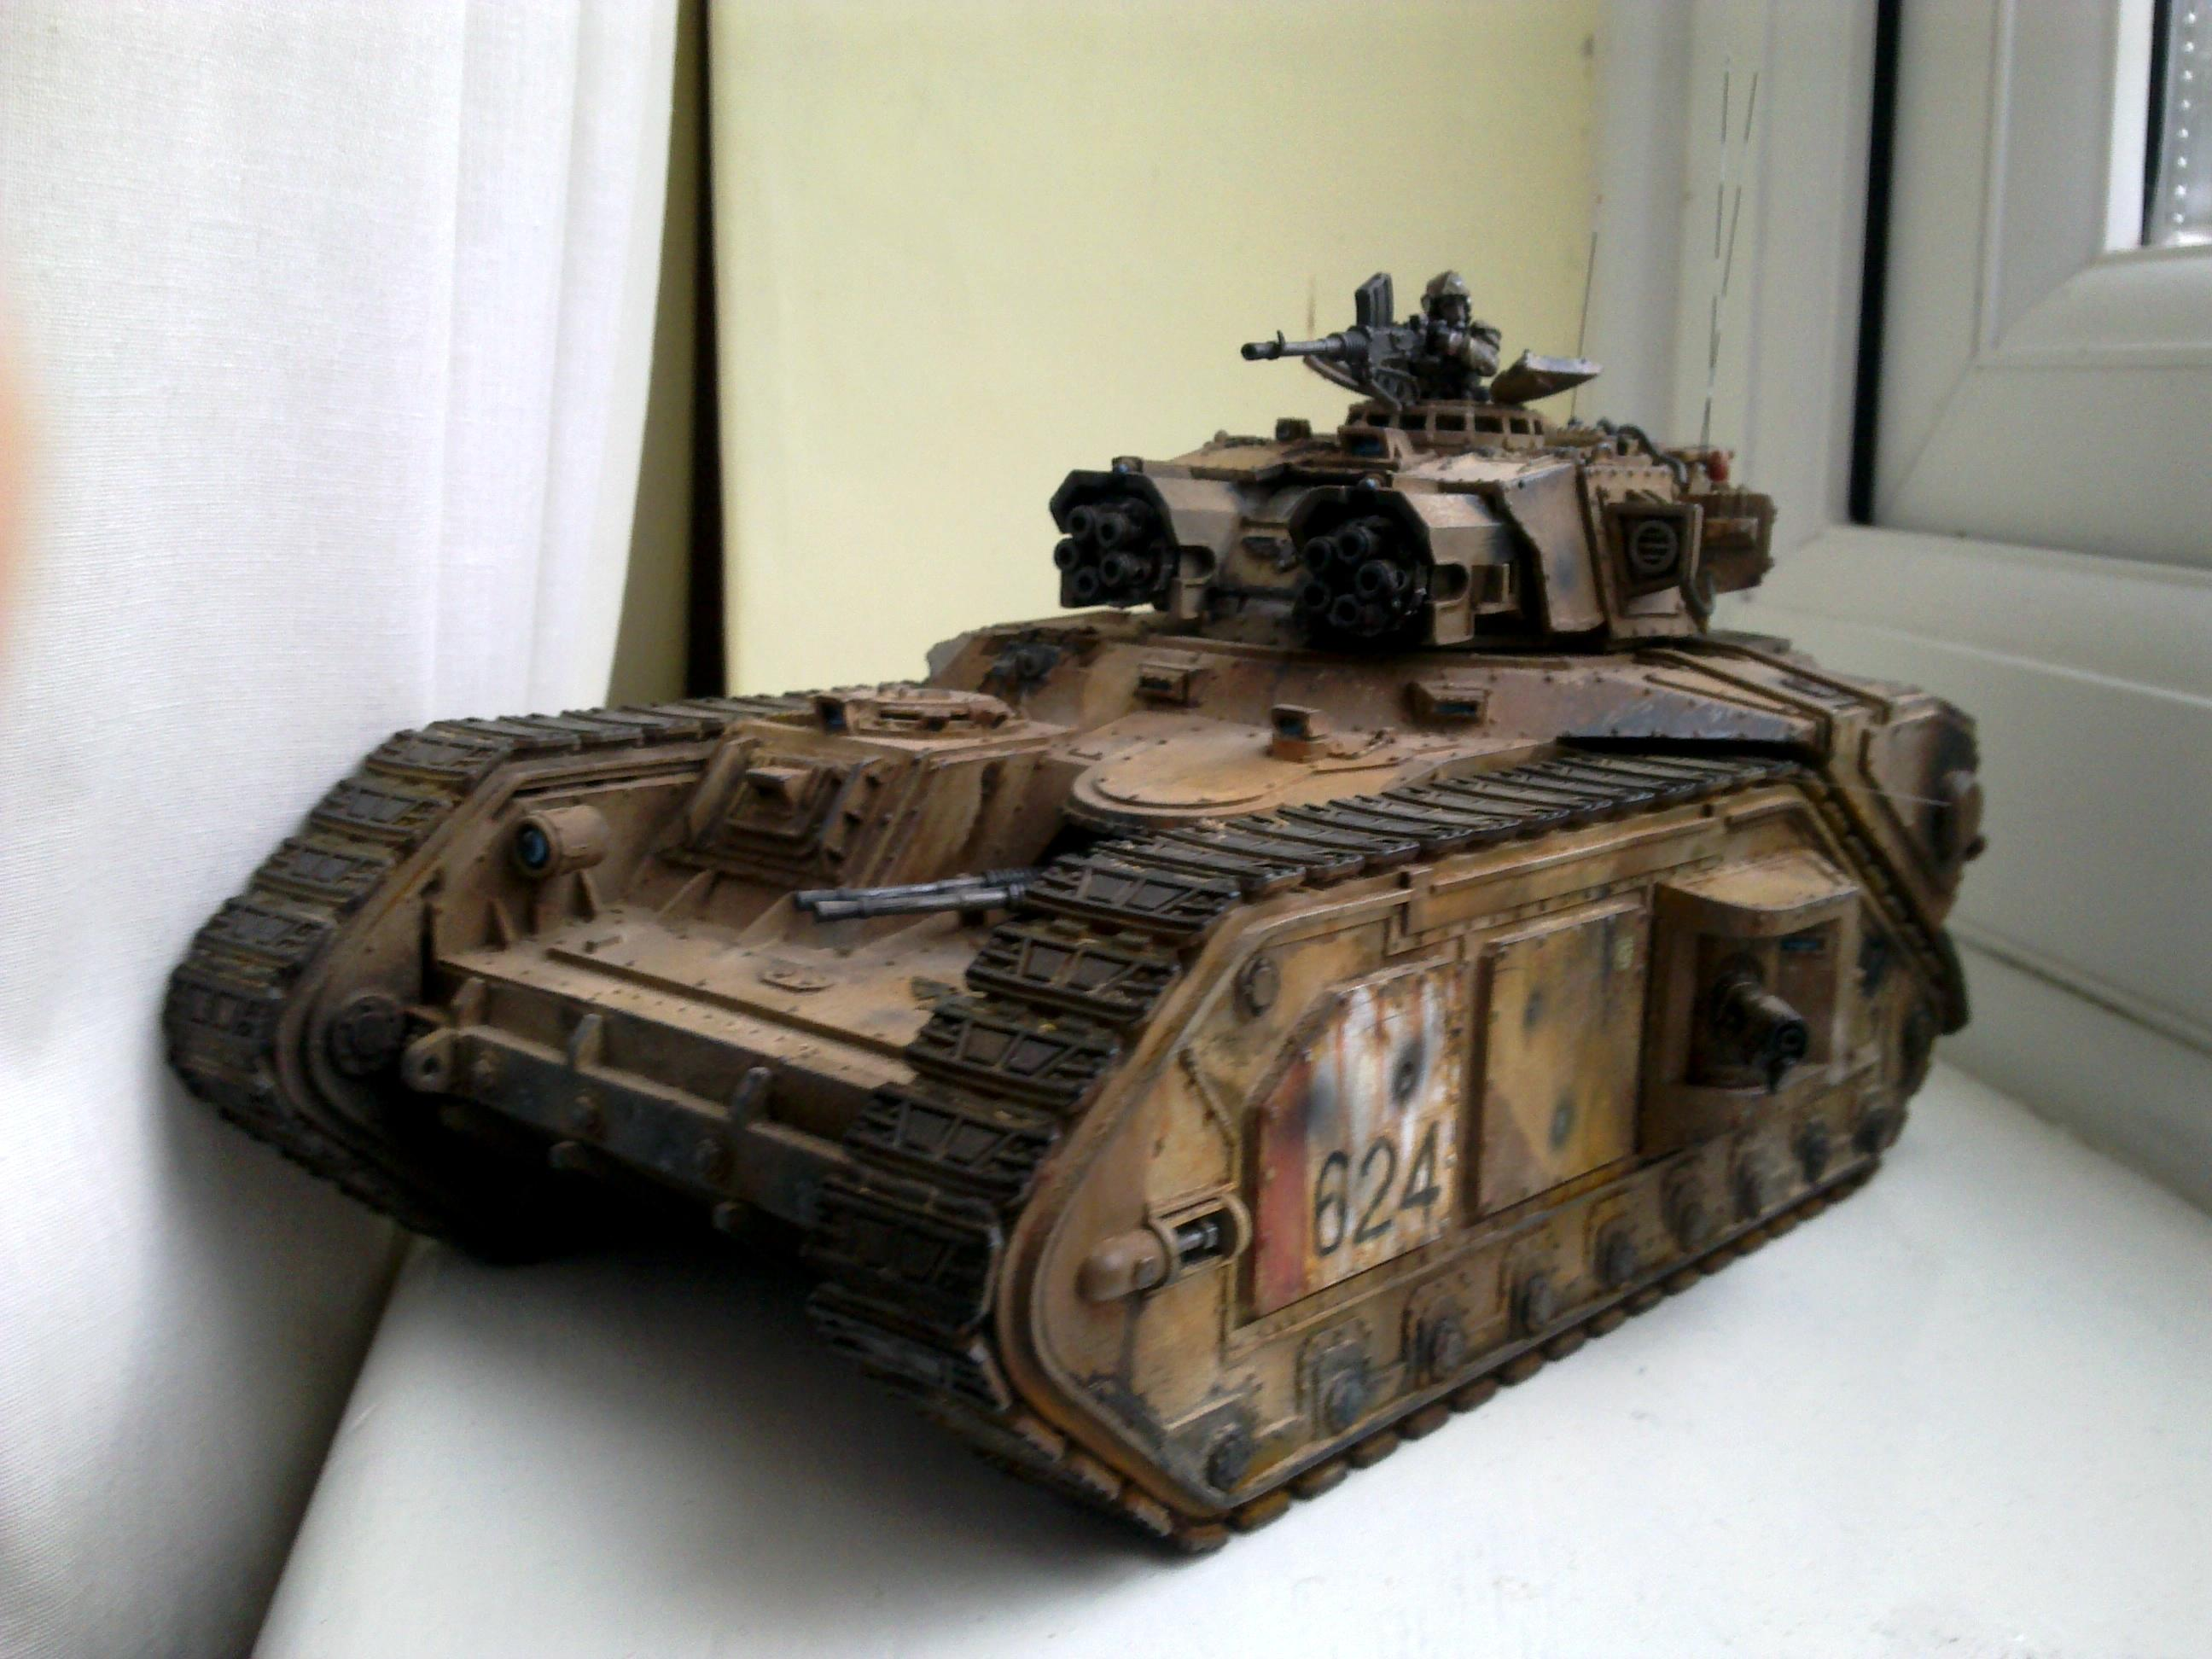 Apocalypse, Imperial Guard, Stormlord, Super-heavy, Tank, Warhammer 40,000, Weathered